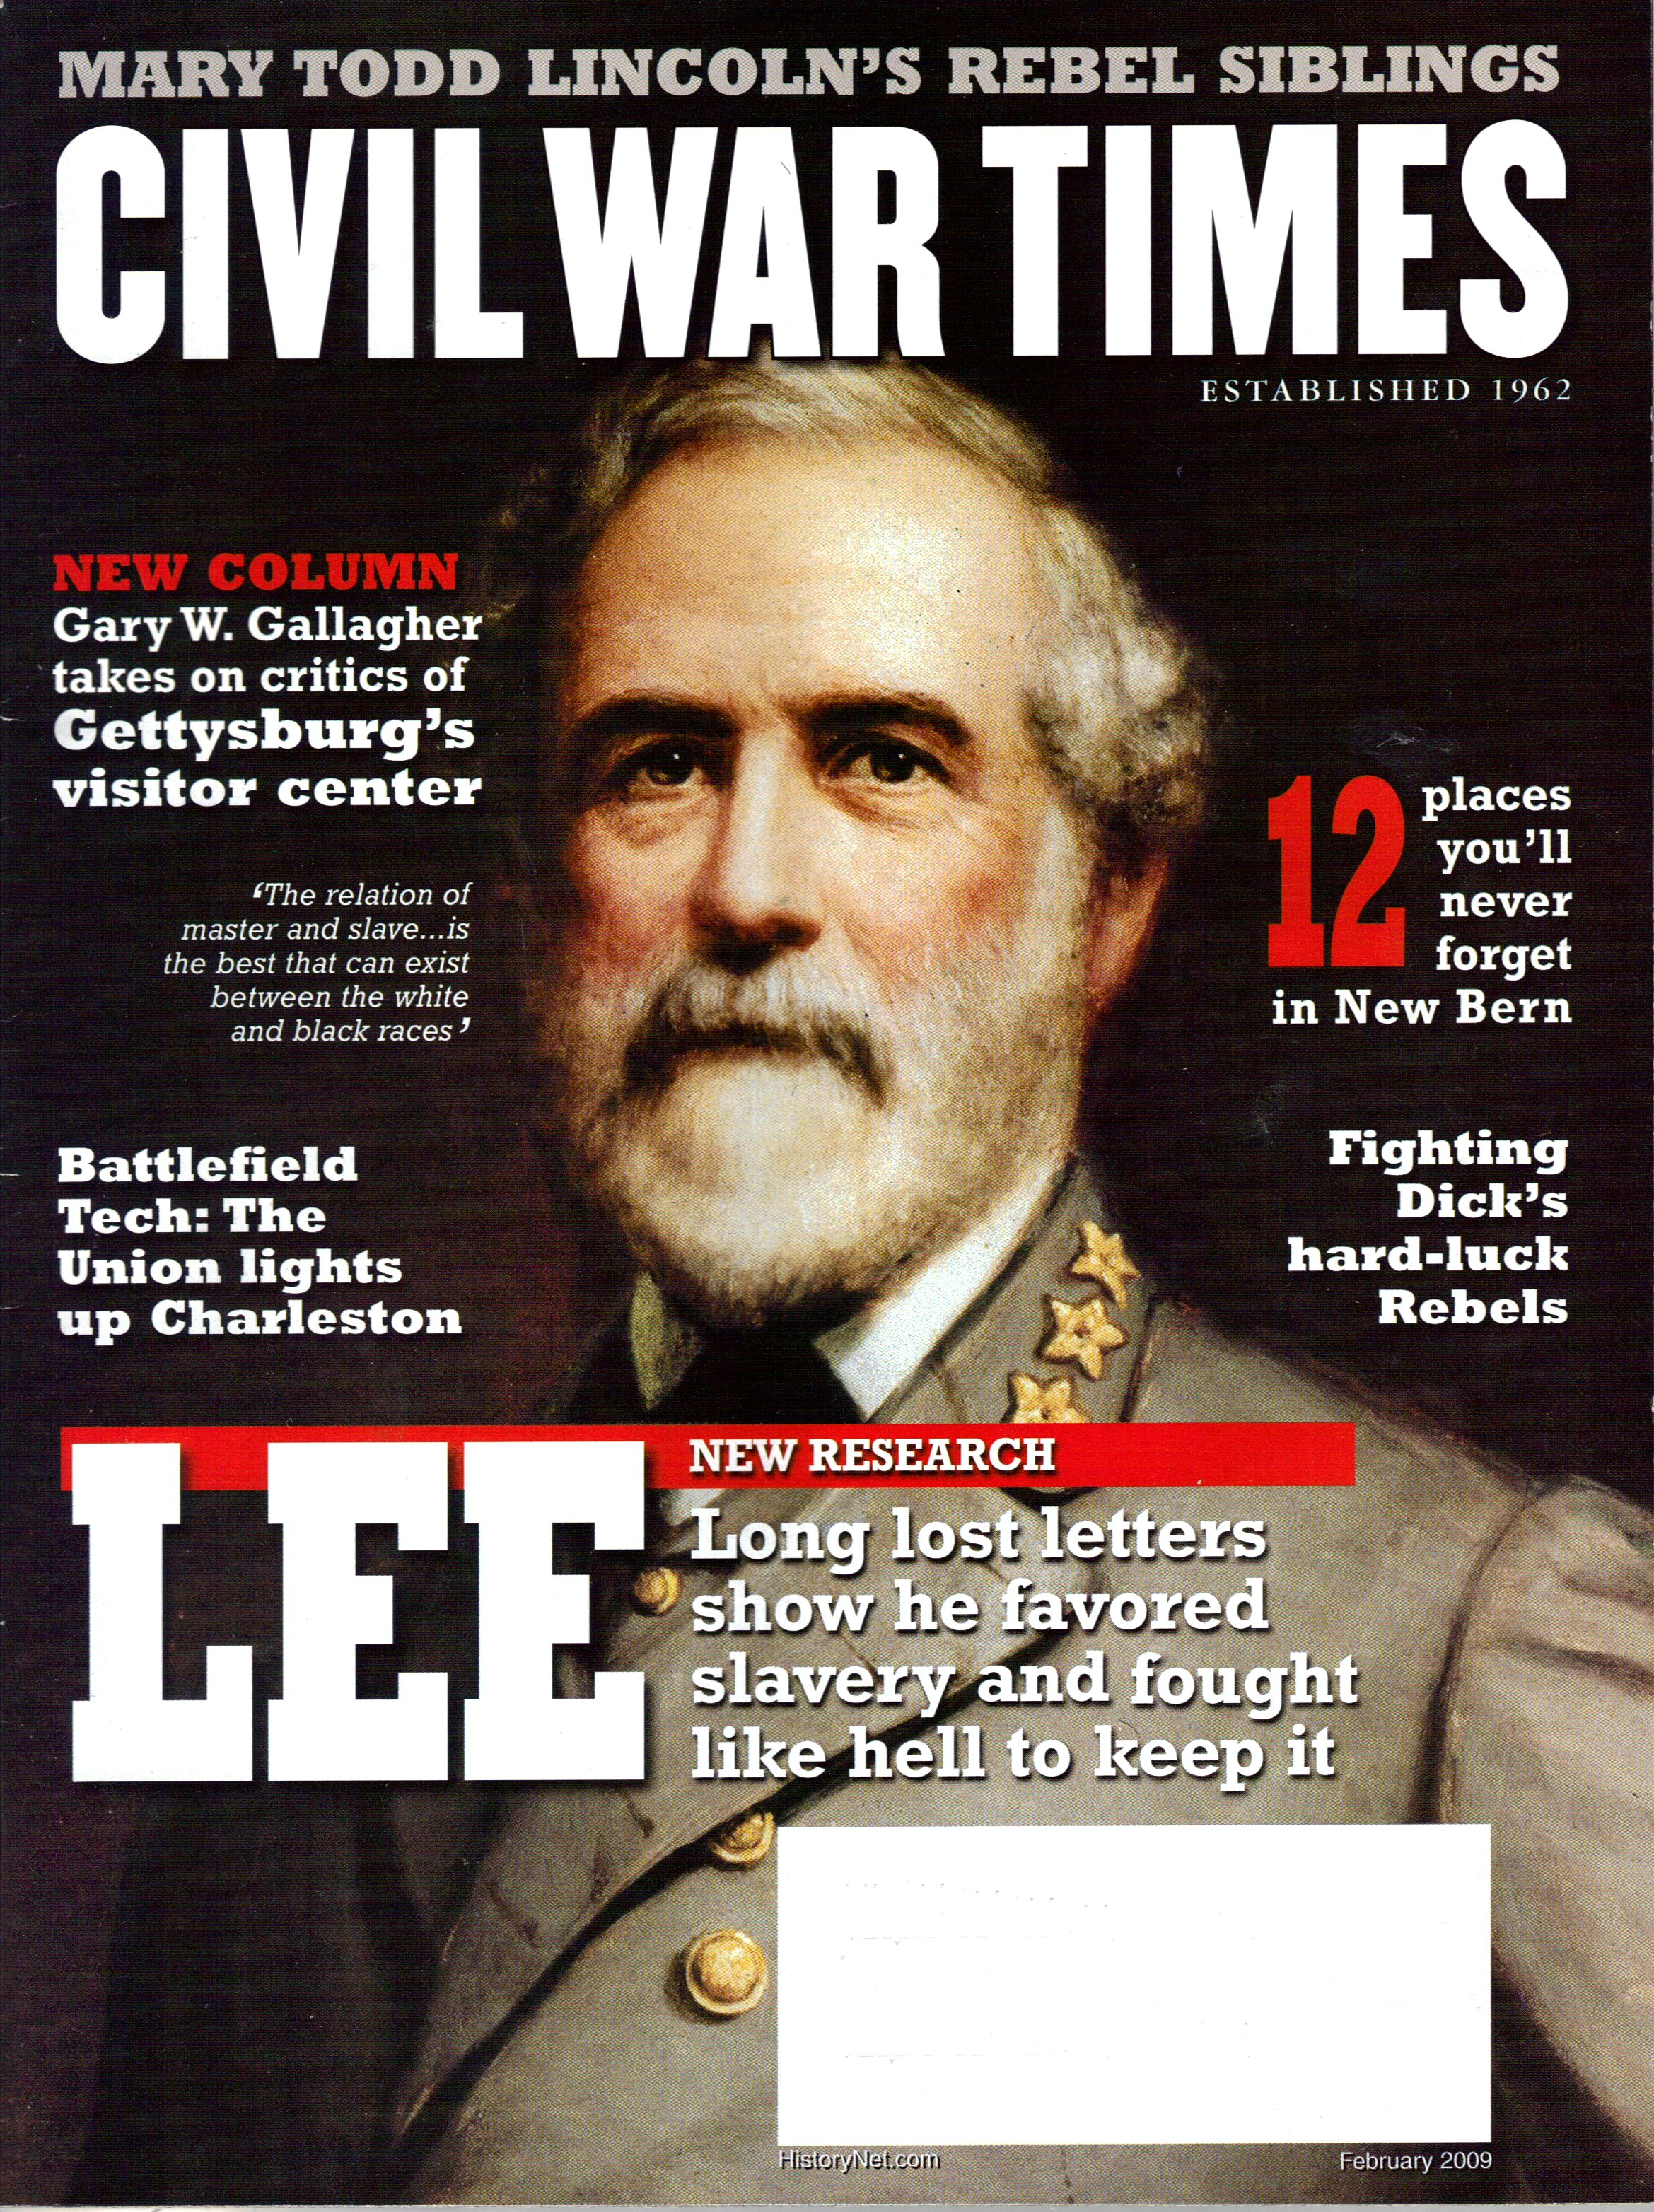 Civil War Times, Volume 48, Number 1 (February 2009)